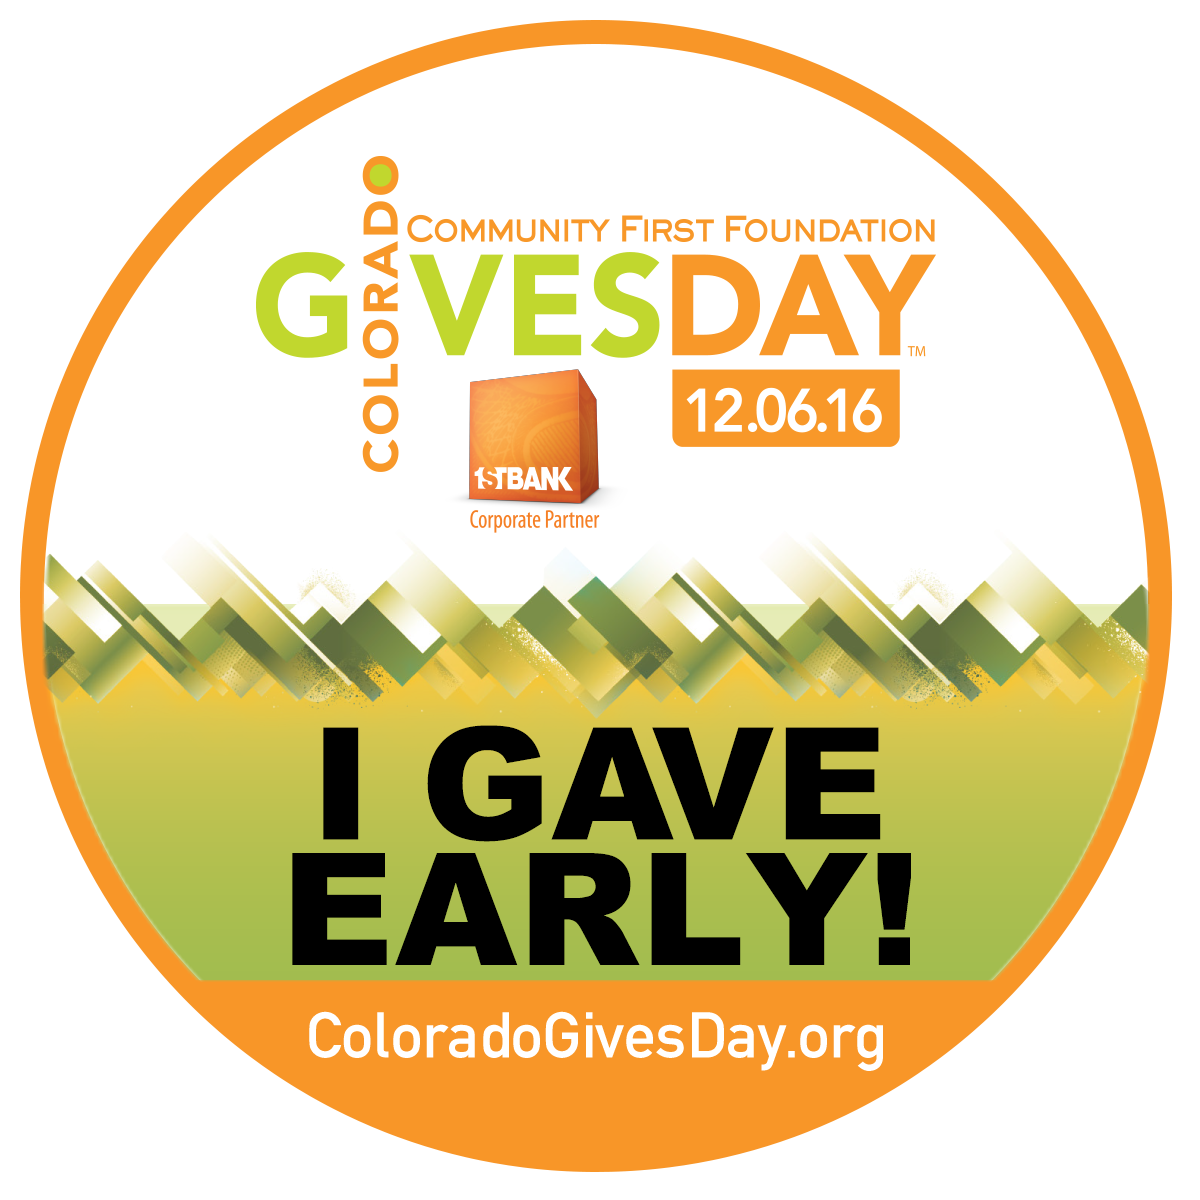 Colorado Gives Day is Tuesday, December 6th